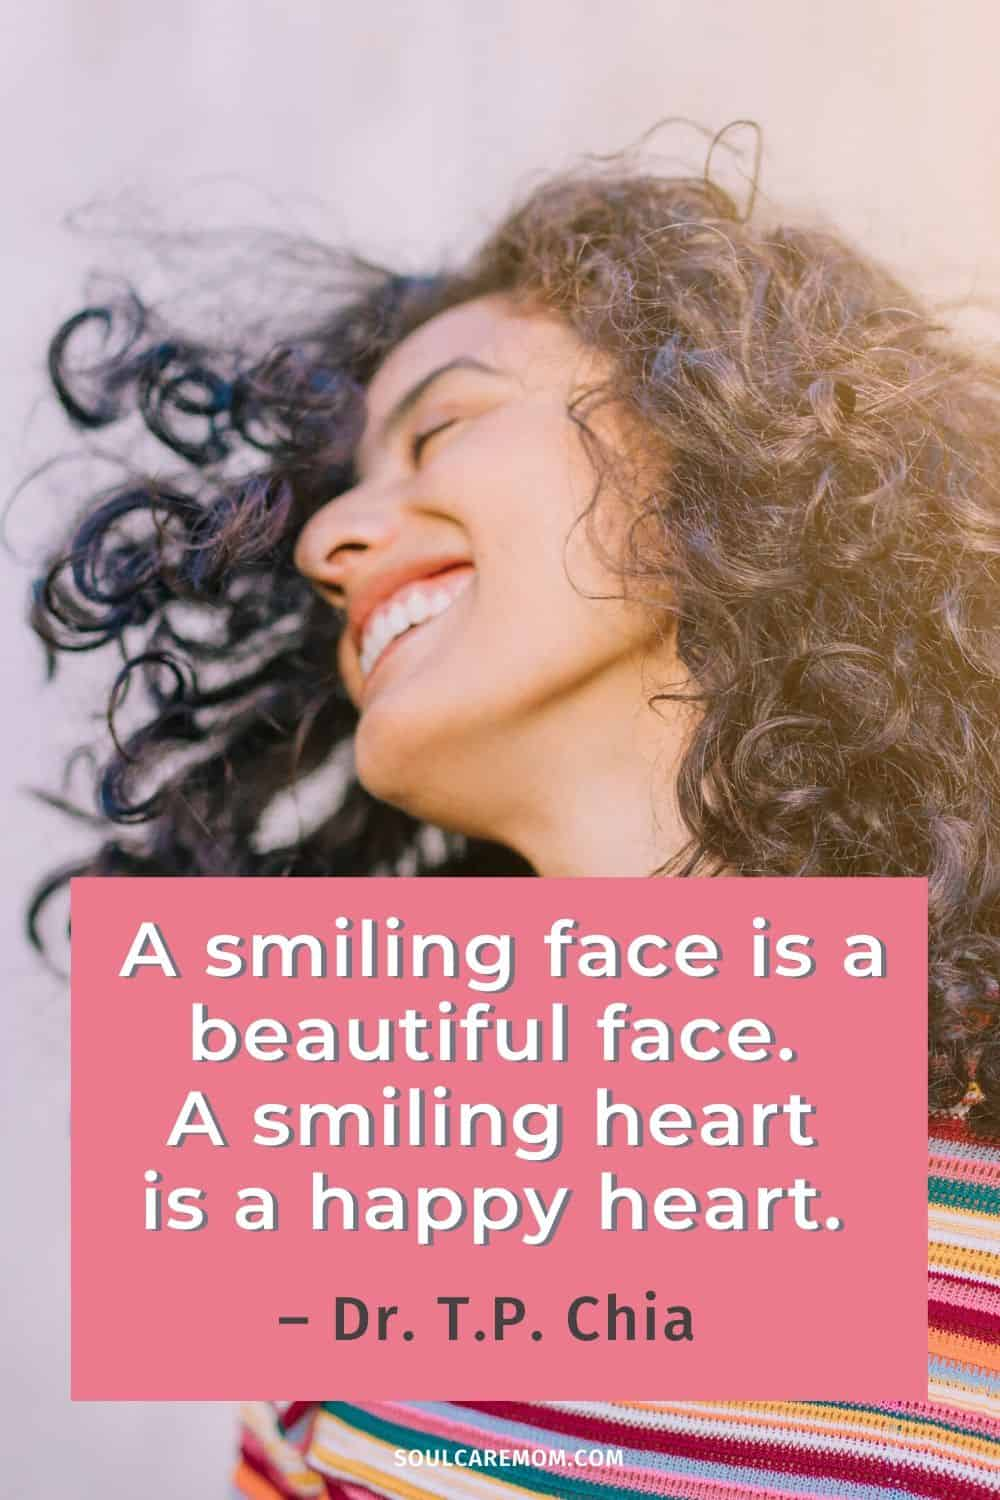 A smiling face is a beautiful face. A smiling heart is a happy heart. – Dr. T.P. Chia - Smile Quote - Soul Care Mom